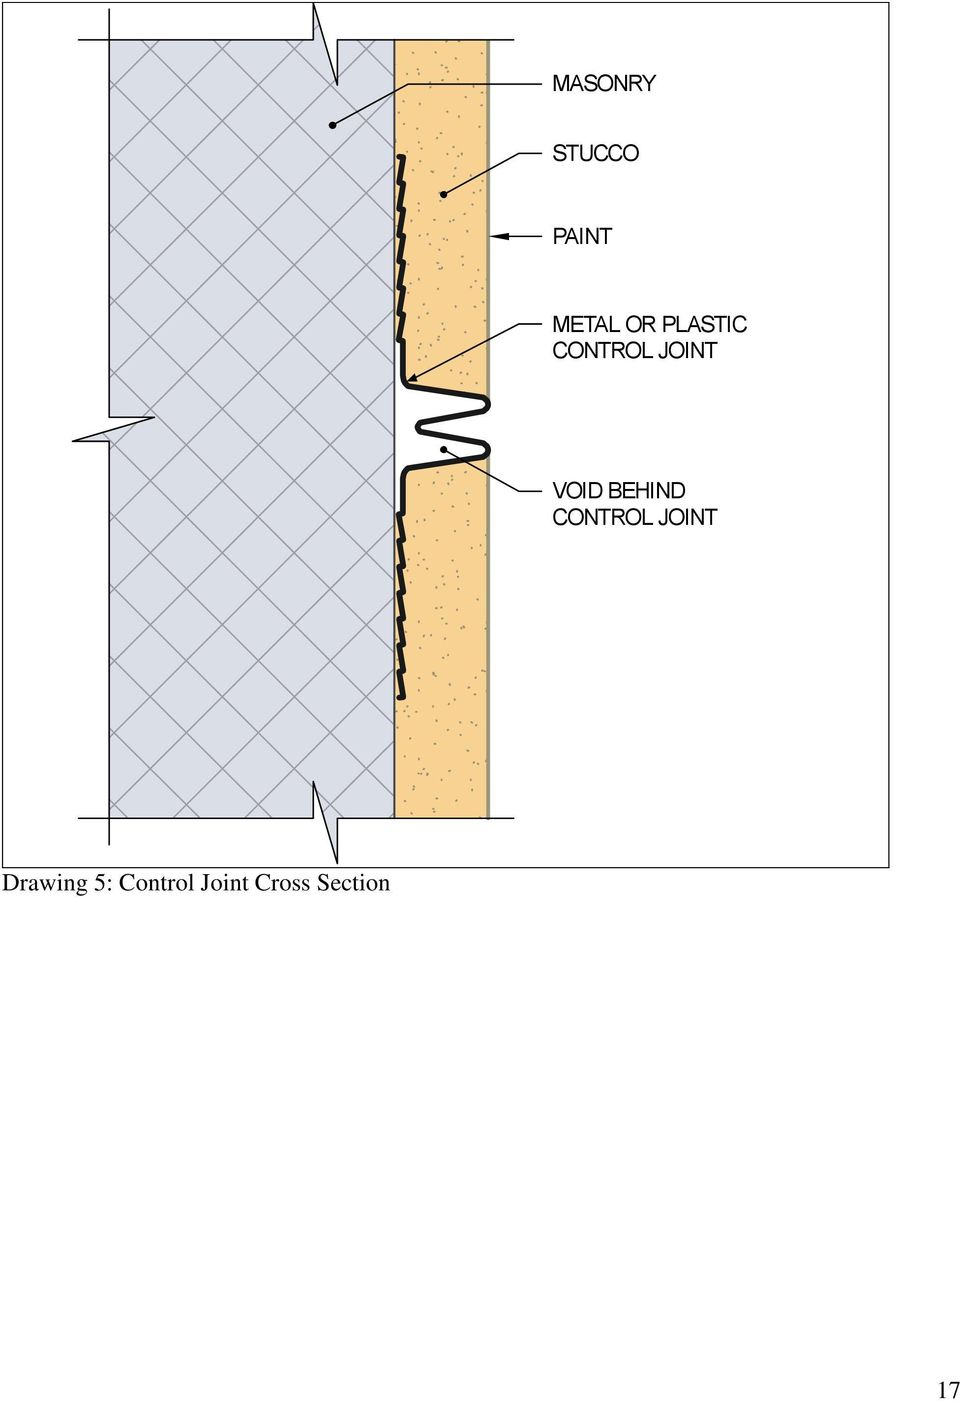 Drawing 5: Control Joint Cross Section